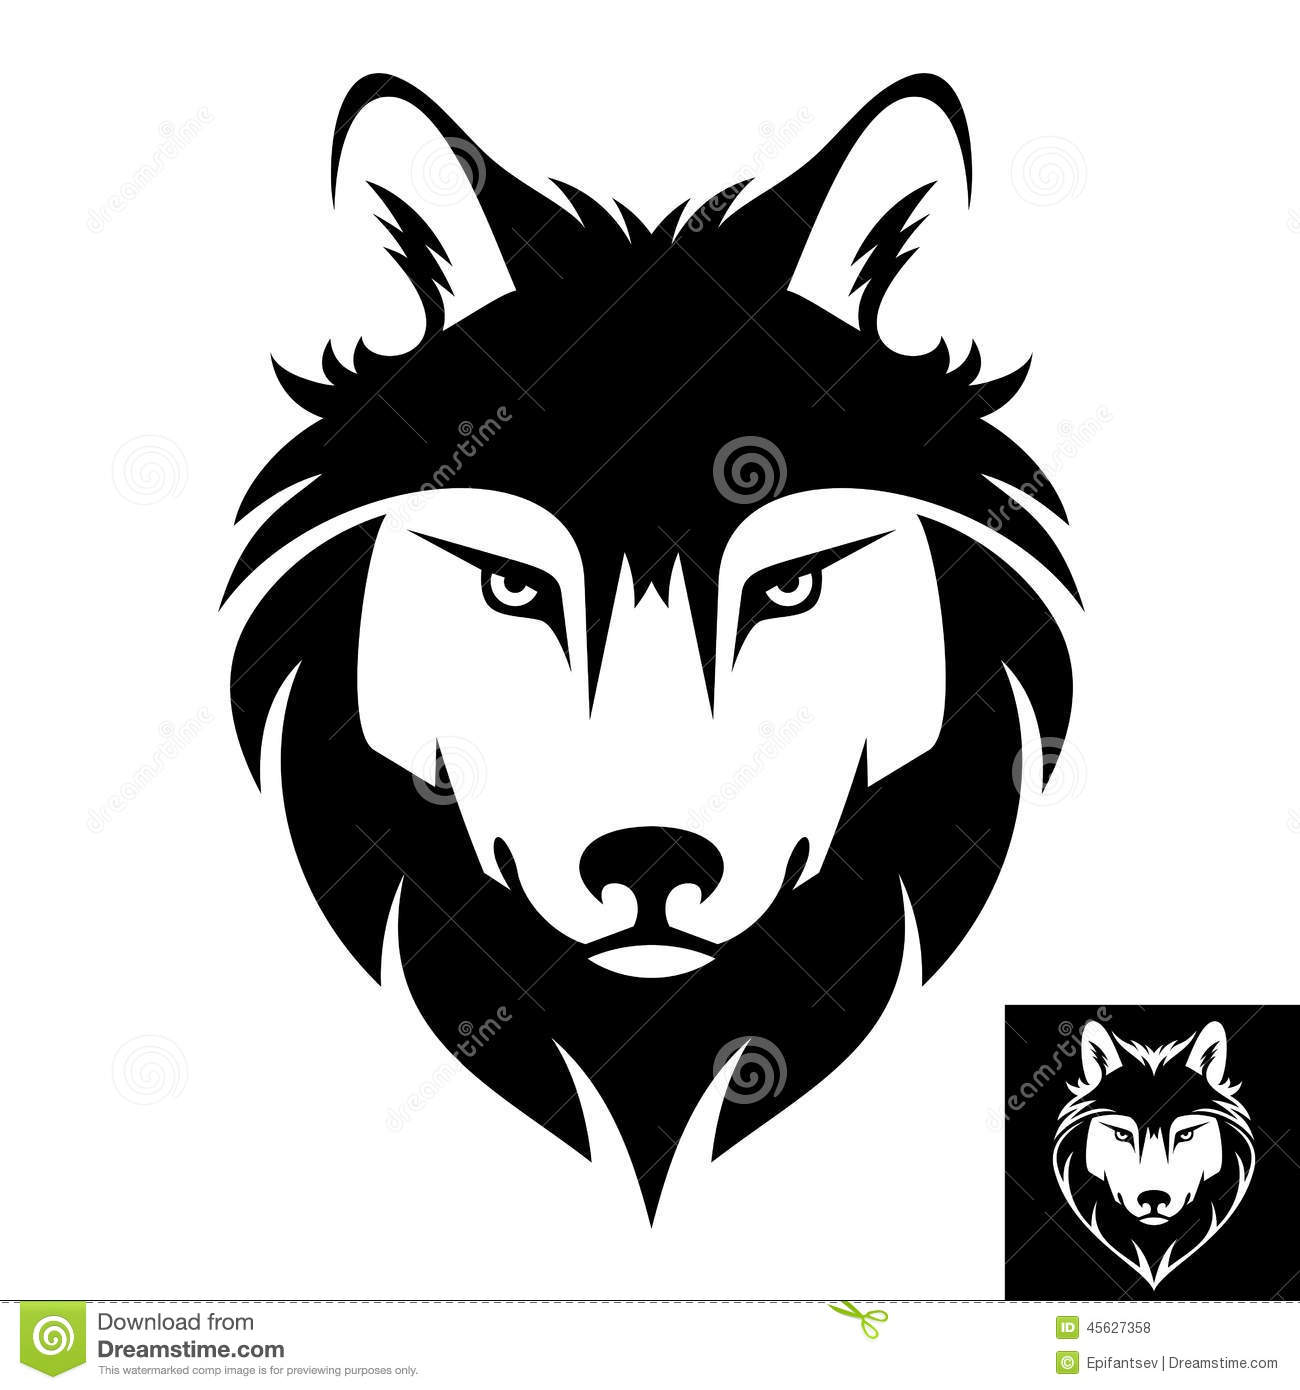 WOLF POWER SYSTEMS PERFECTLY IN TUNE WITH YOU